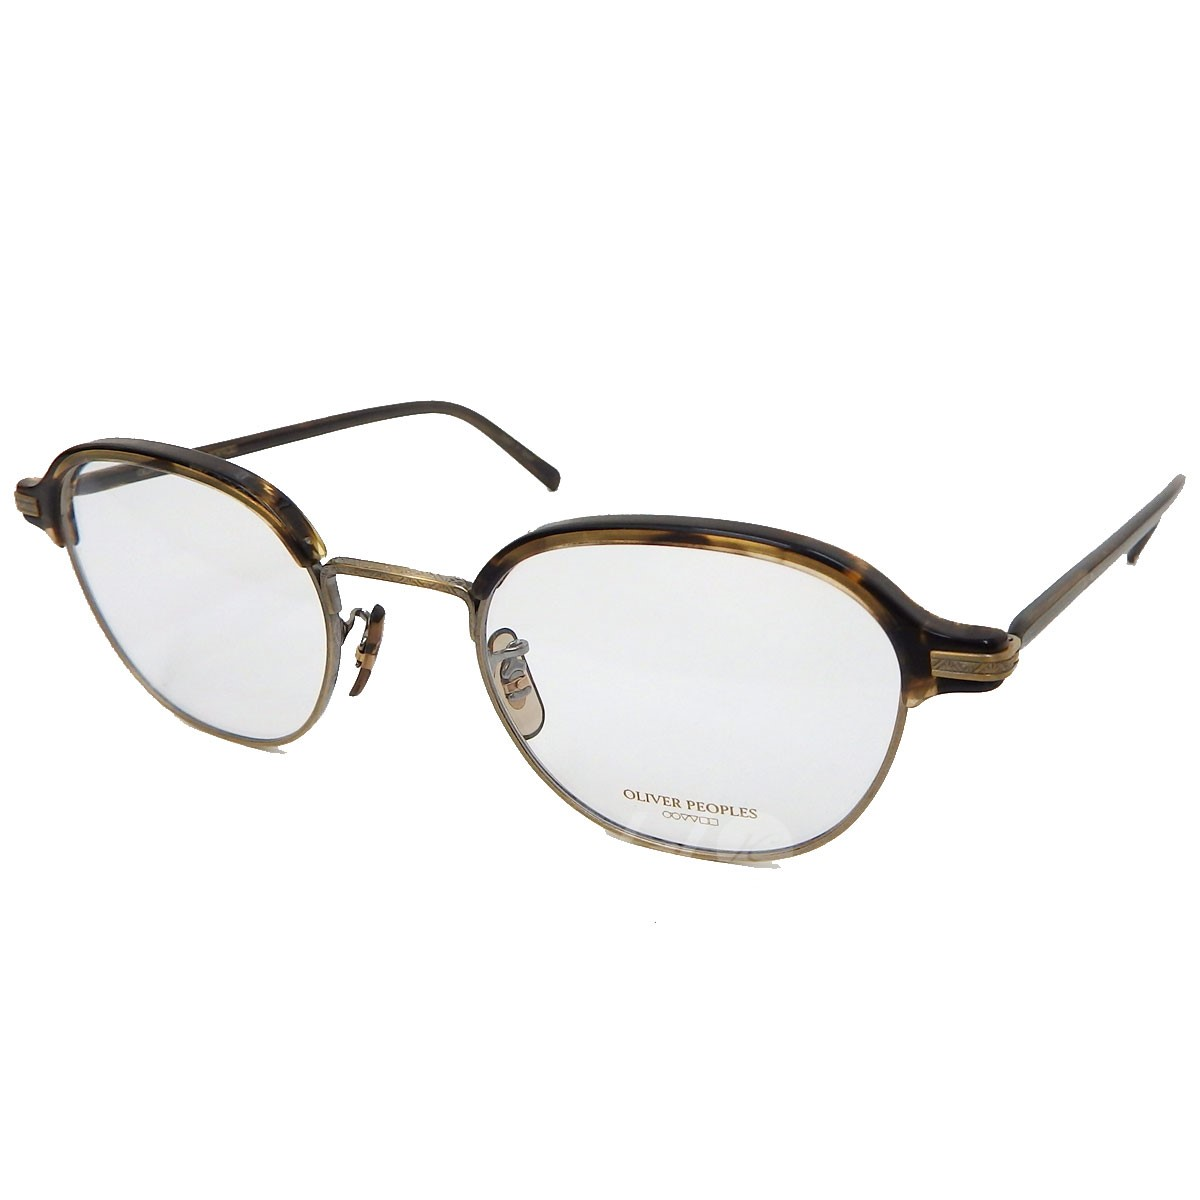 【中古】OLIVER PEOPLES Canfield COCO2 眼鏡 【送料無料】 【000671】 【KIND1550】